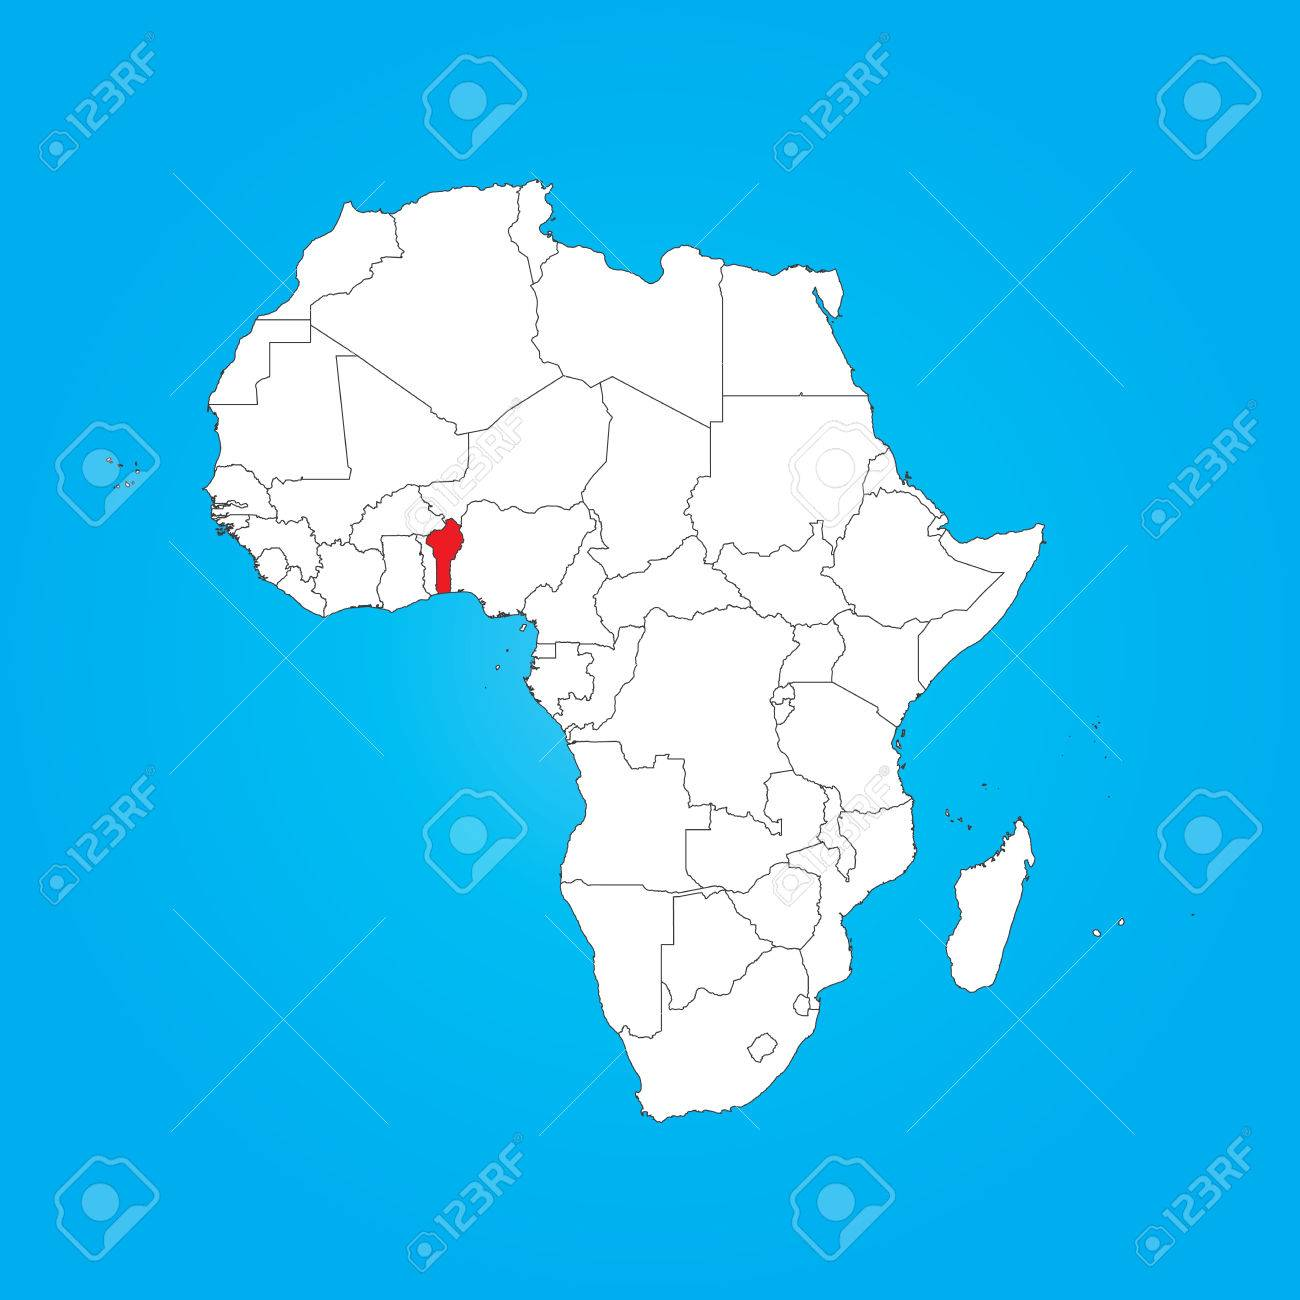 A Map Of Africa With A Selected Country Of Benin Stock Photo